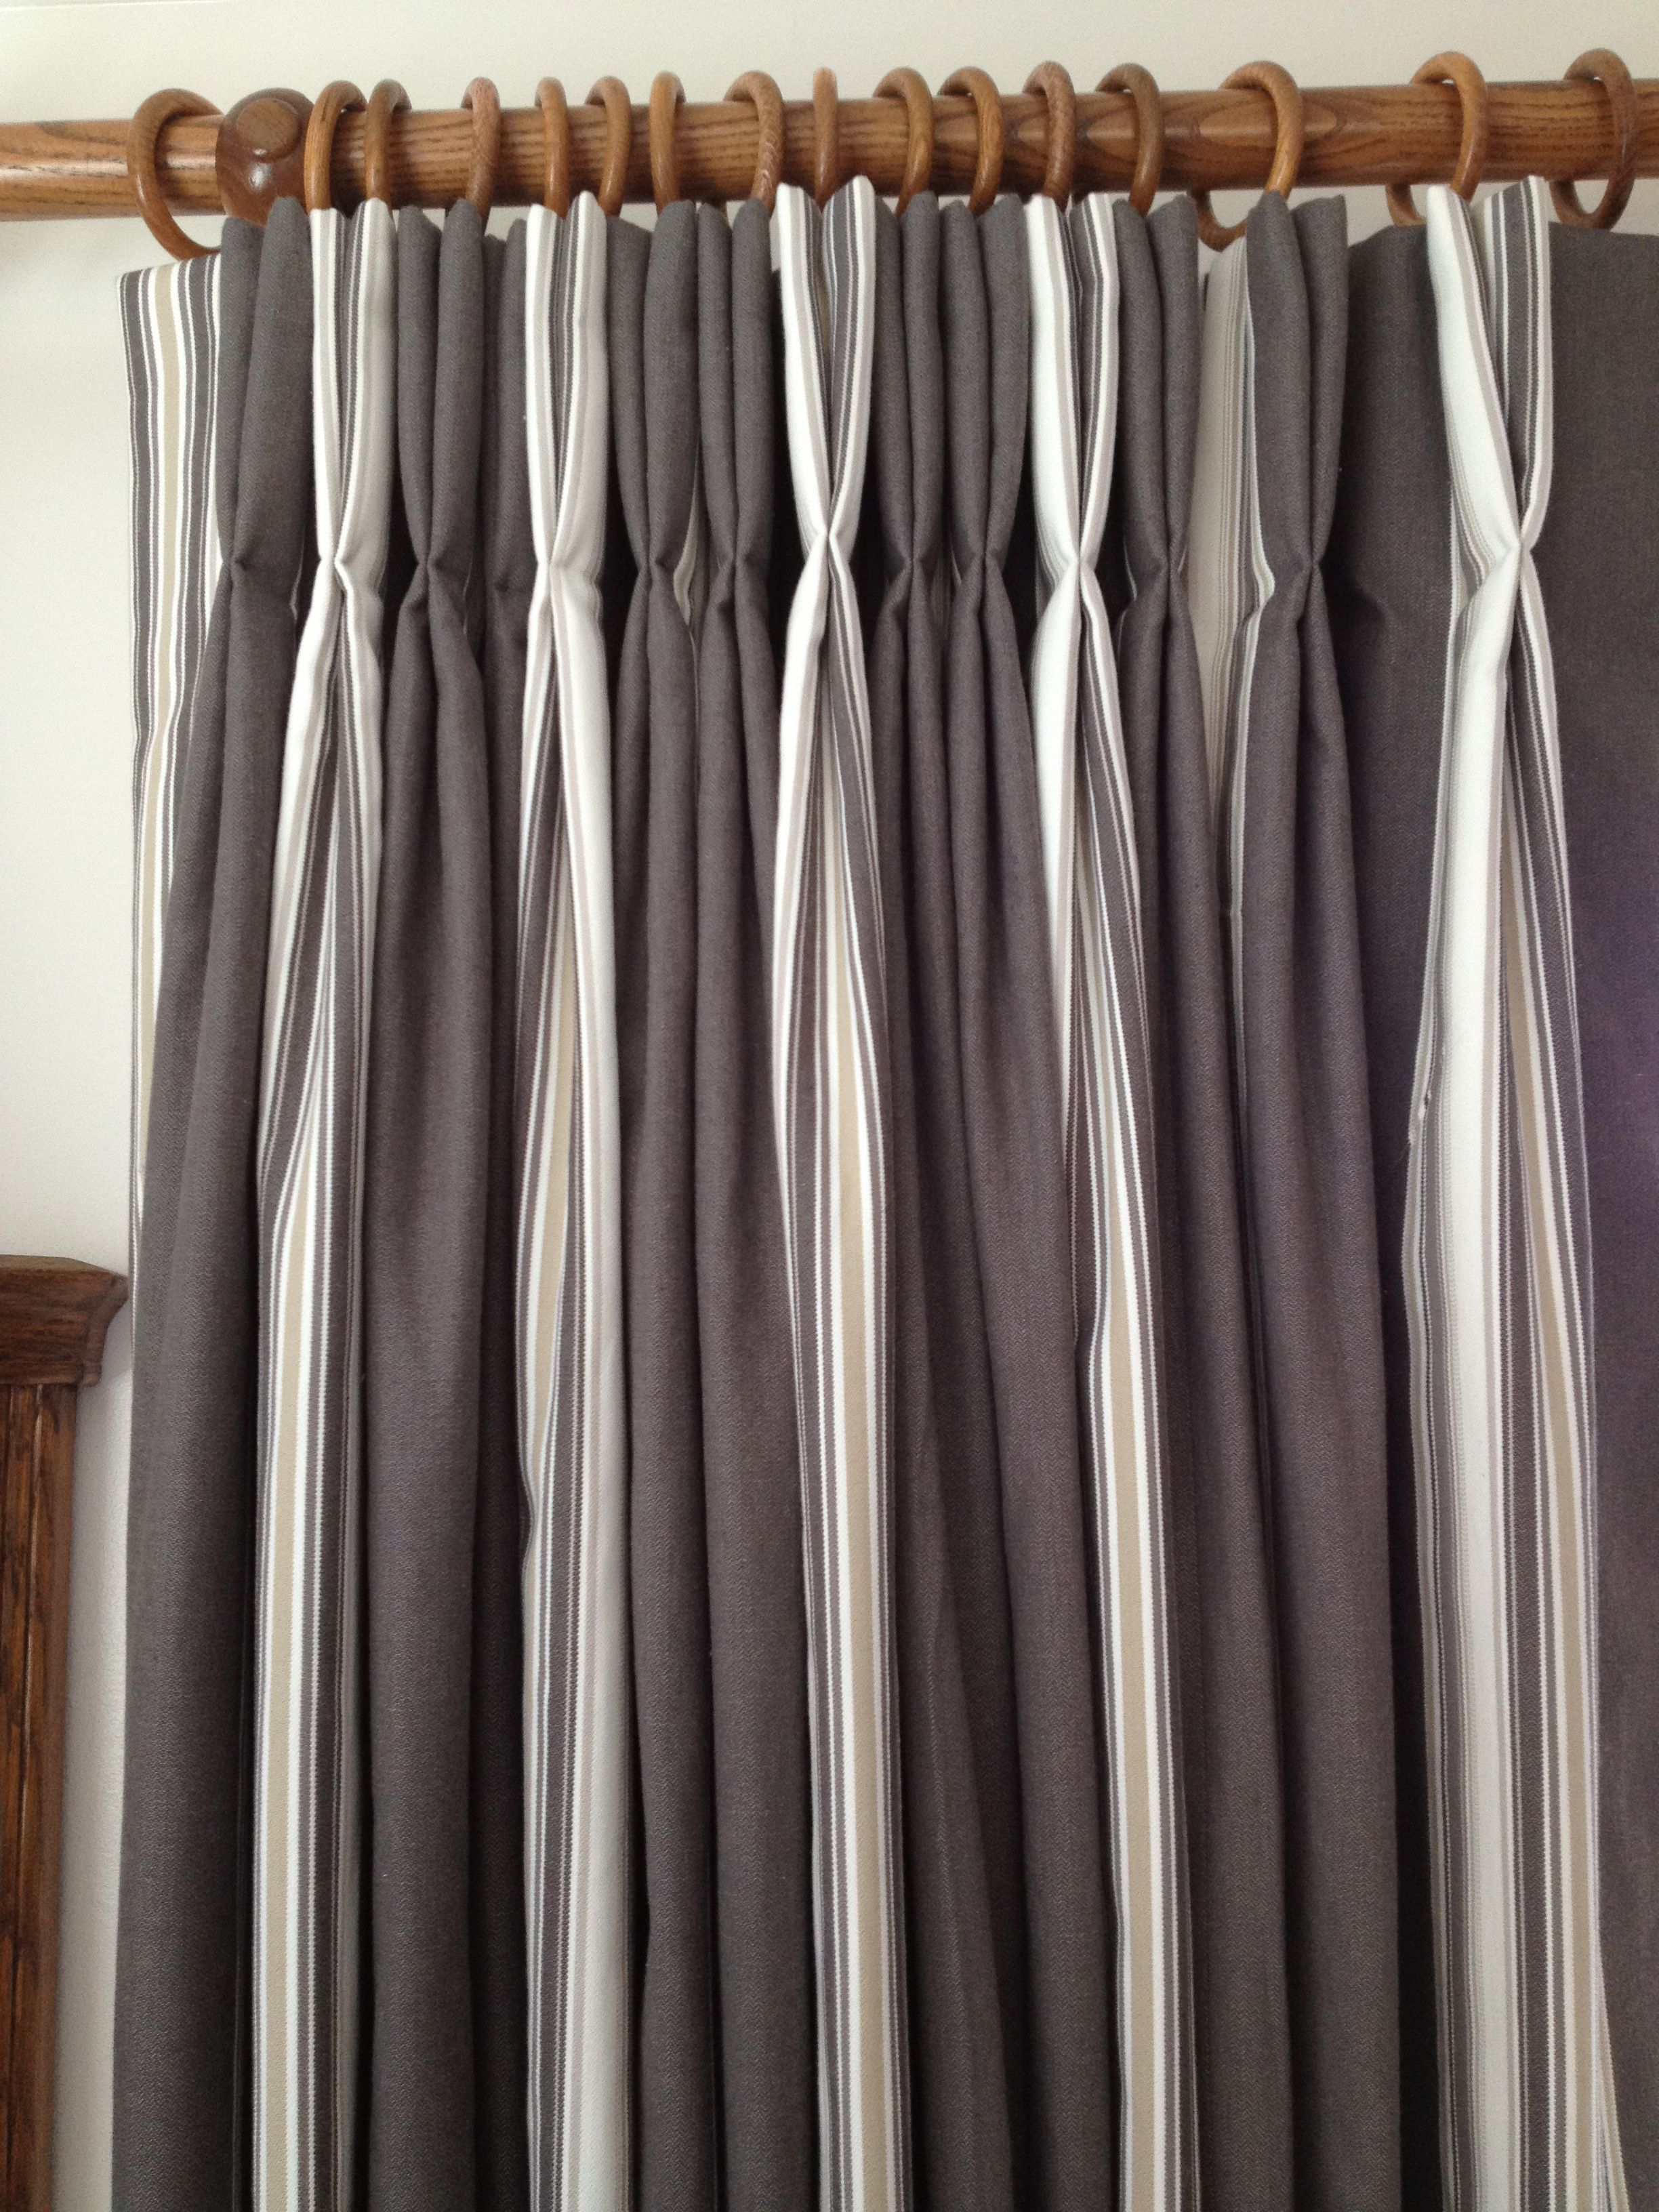 buy curtains then poles my of into or need know and to guide i heading for pole inserted pinch how pleated rings have eye the can curtain stab buying be hooks kind pleat style do already blogs underneath eyelet what goblet